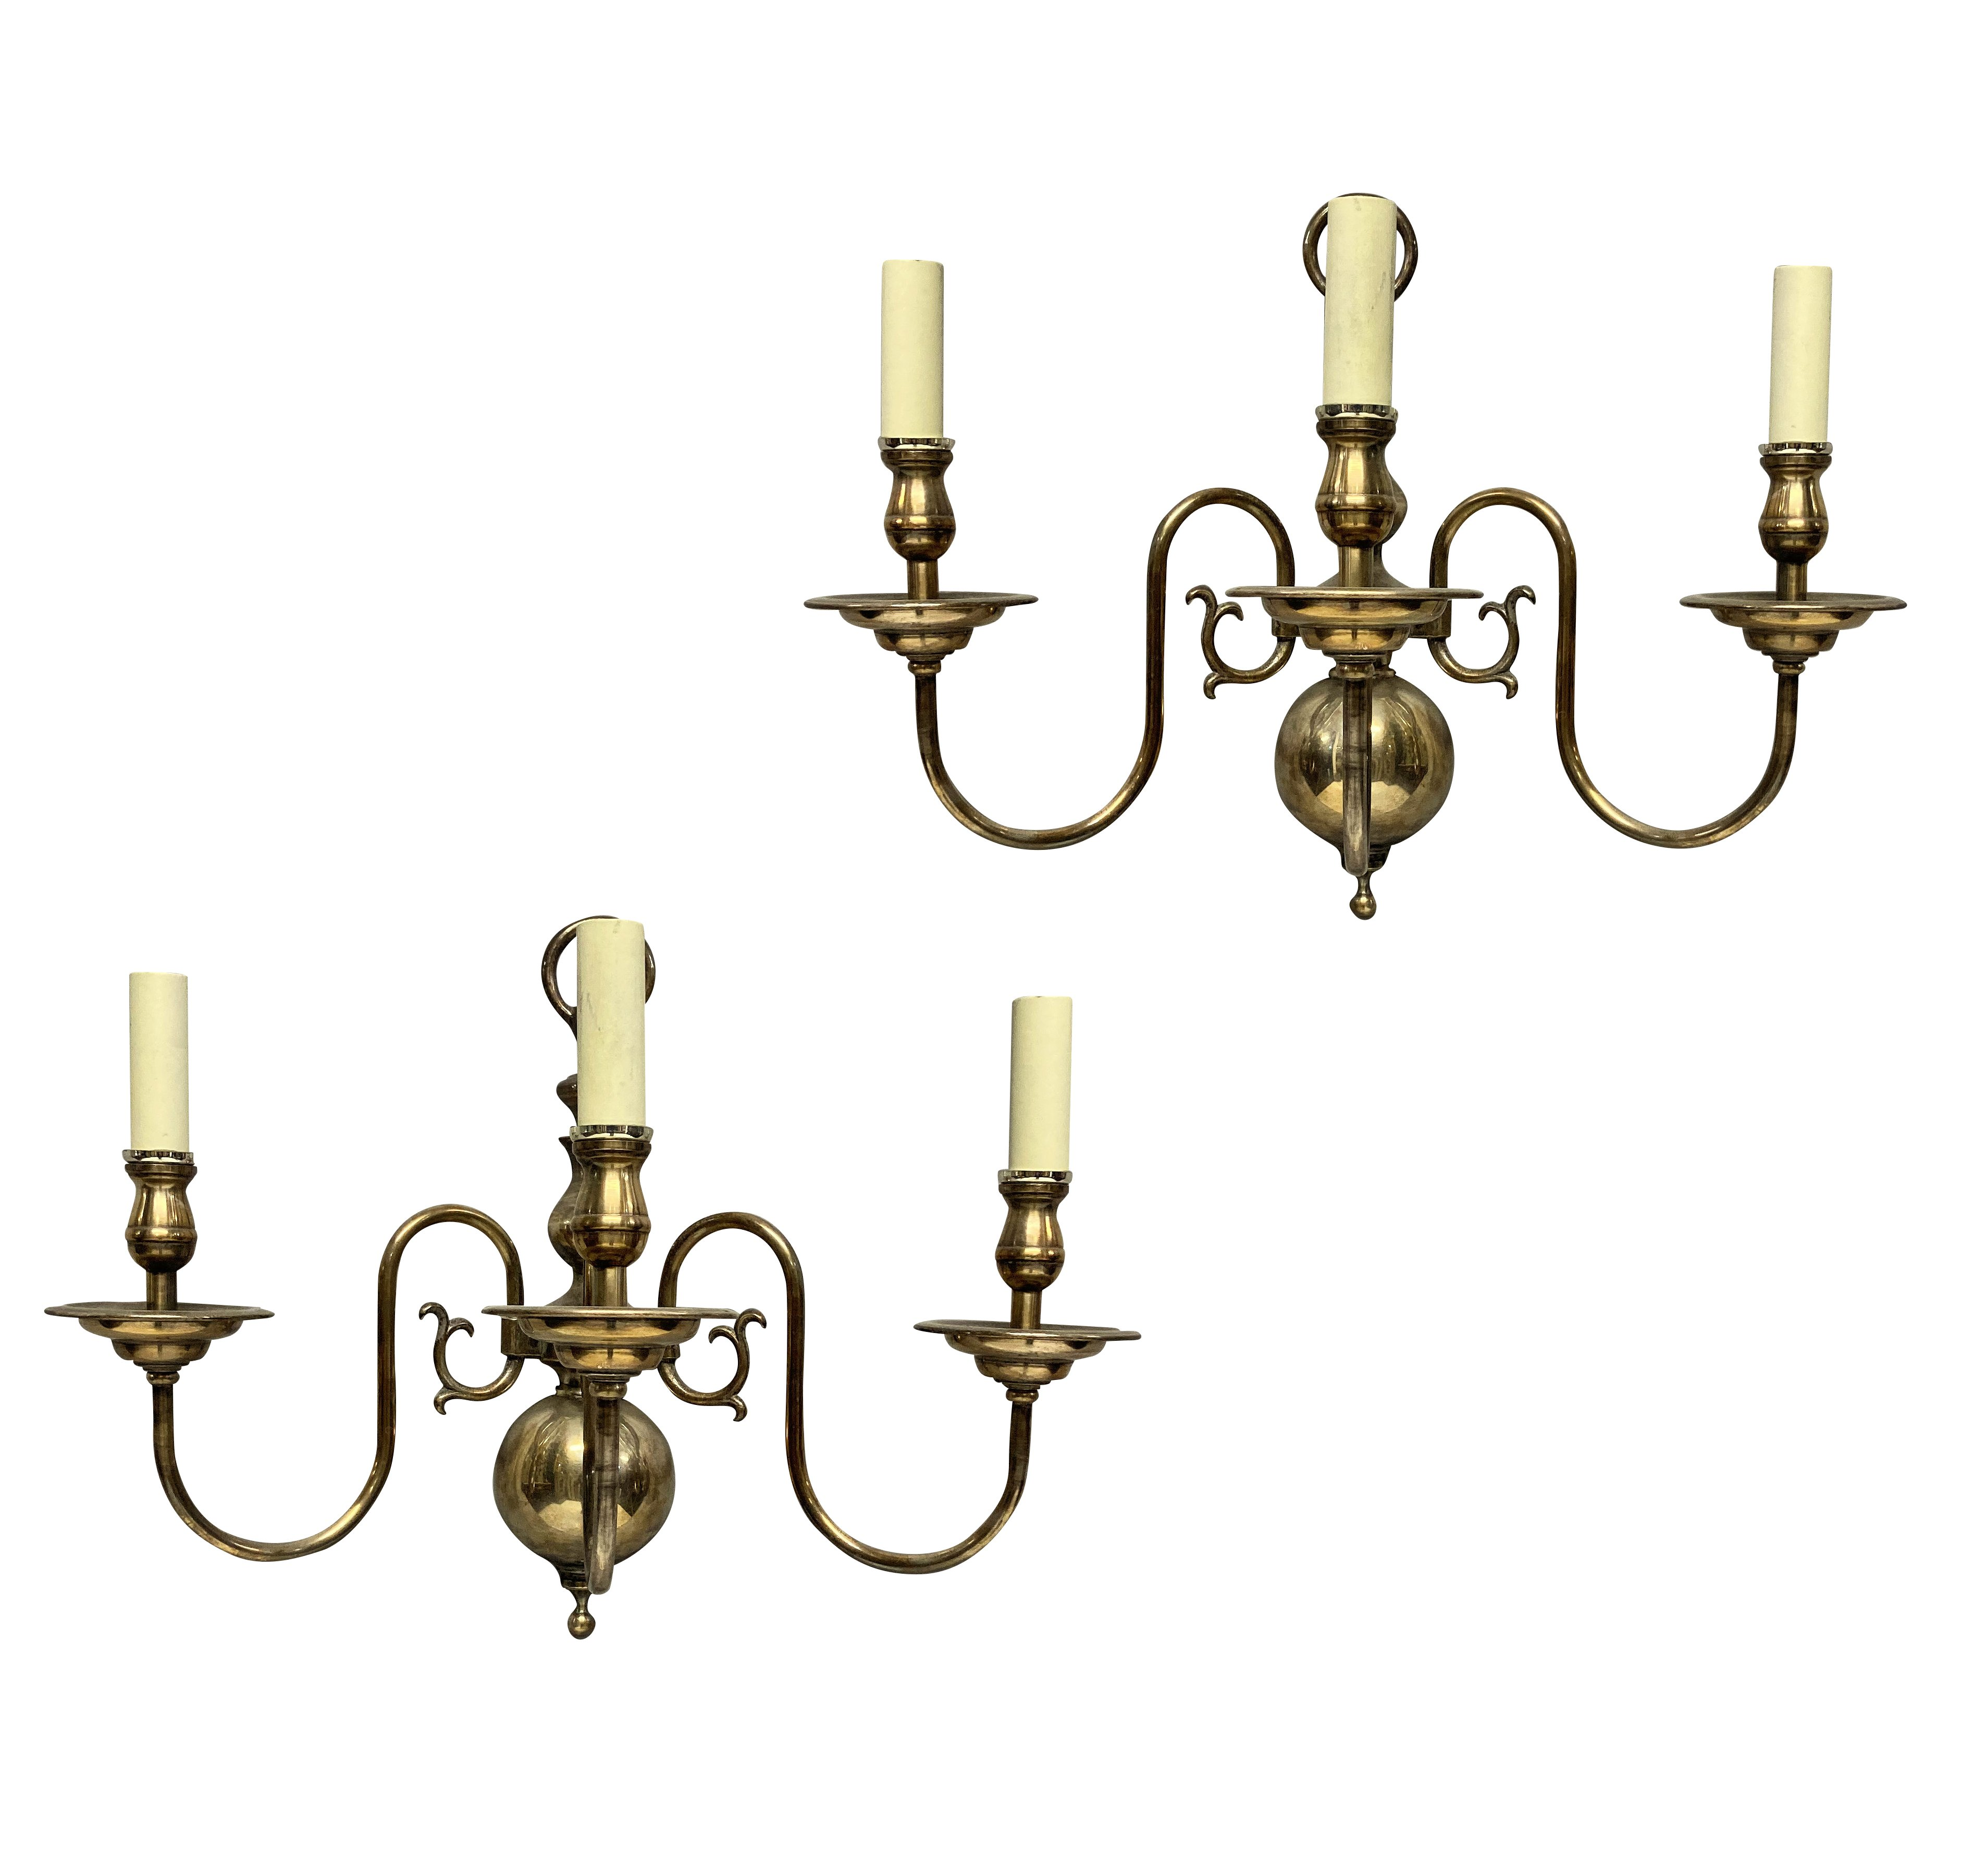 A PAIR OF ENGLISH SILVER PLATED WALL LIGHTS